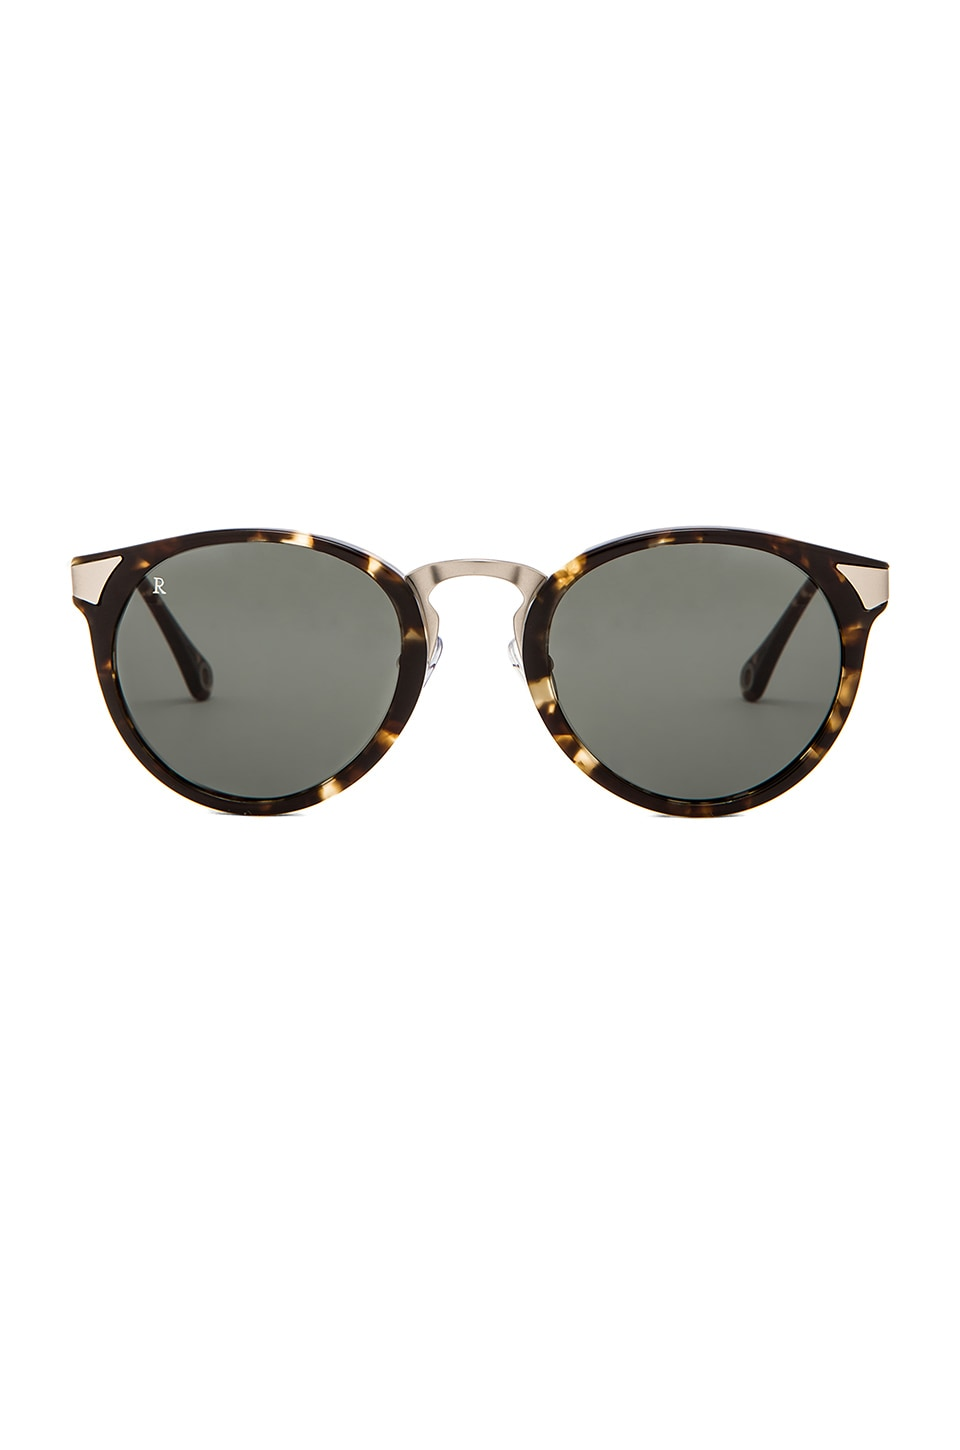 RAEN optics Nera Sunglass in Brindle Tortoise